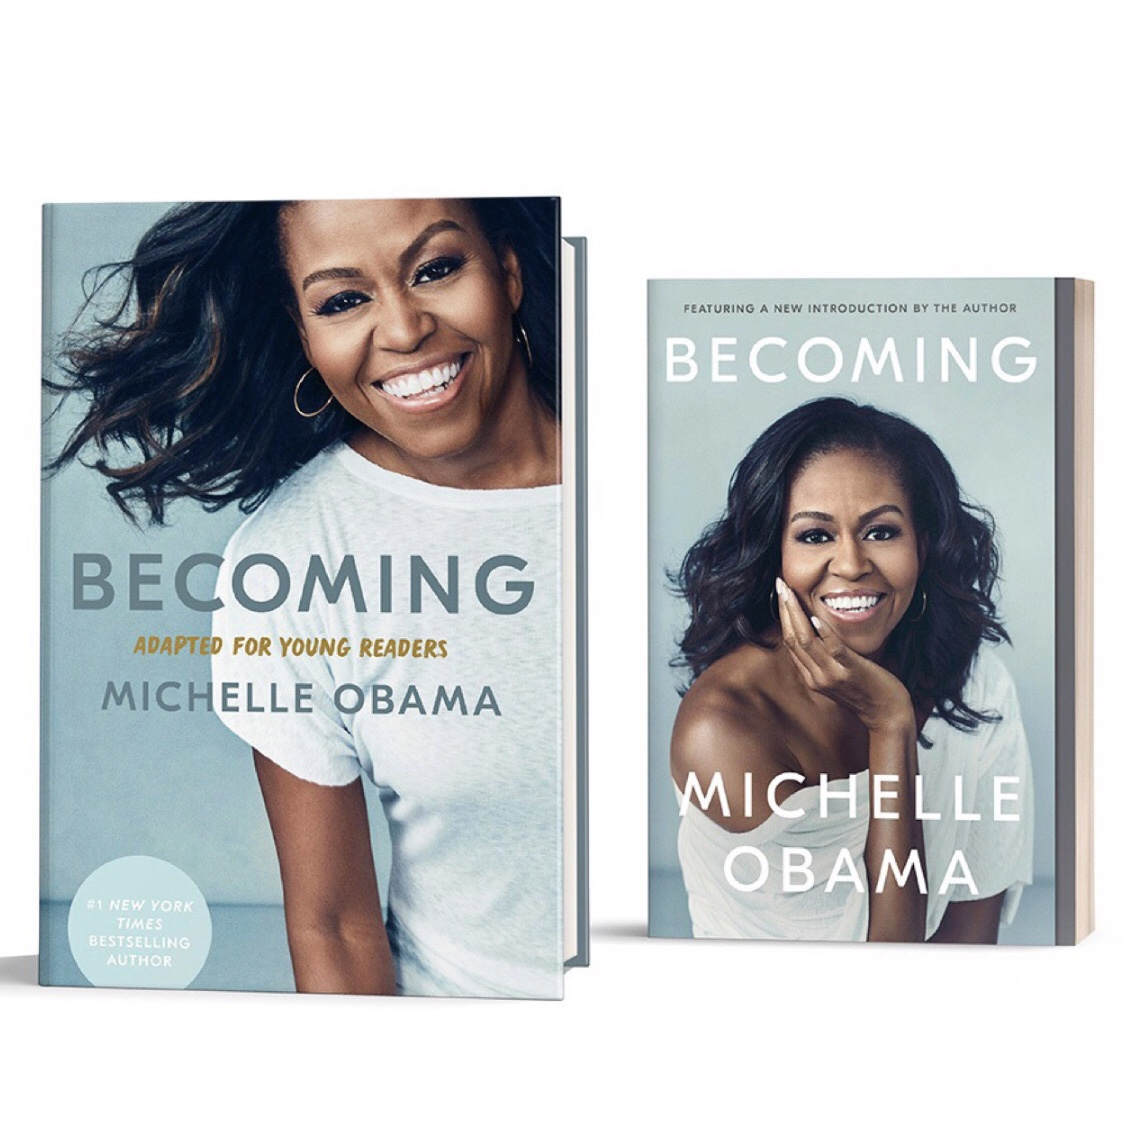 .@MichelleObama's inspiring & powerful memoir, Becoming, has been adapted for young readers & is out now in paperback!   Available at .  #IAmBecoming